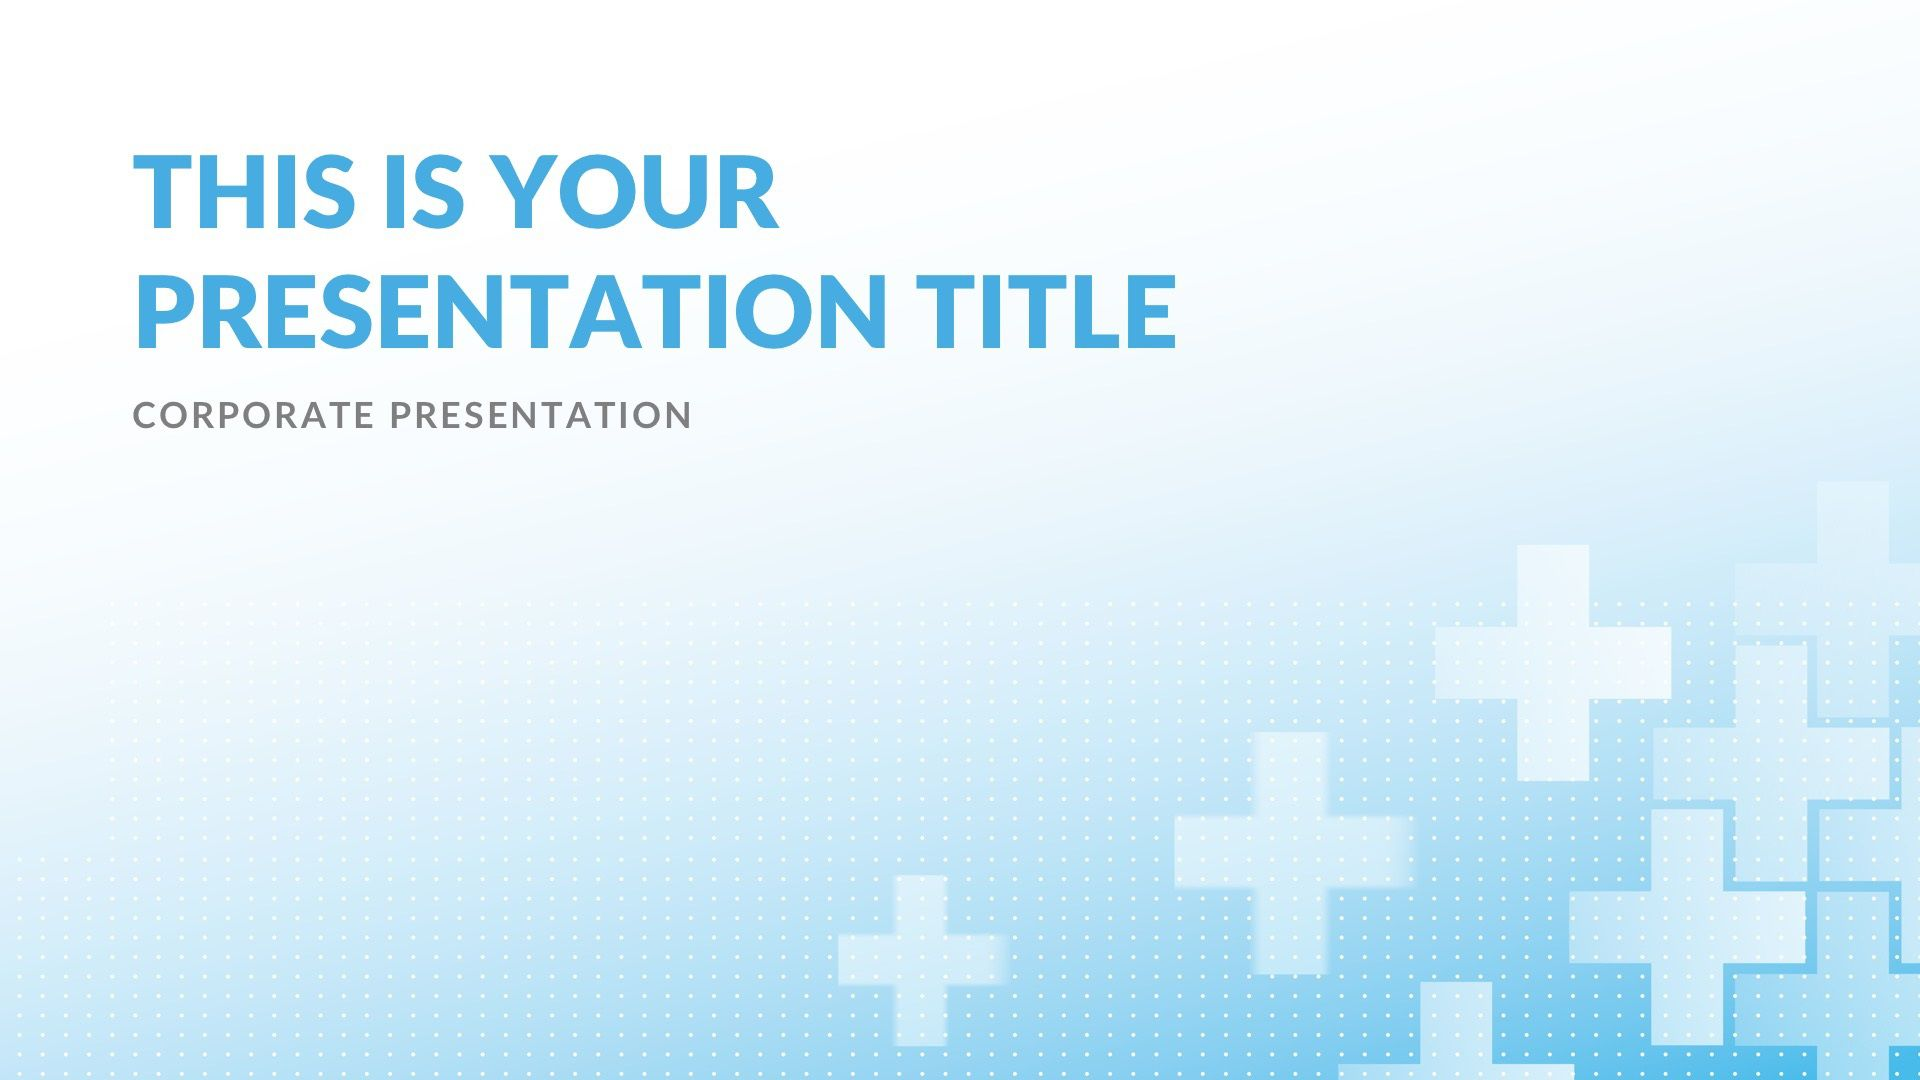 001 Rare Powerpoint Presentation Template Free Download Medical Highest Quality  AnimatedFull